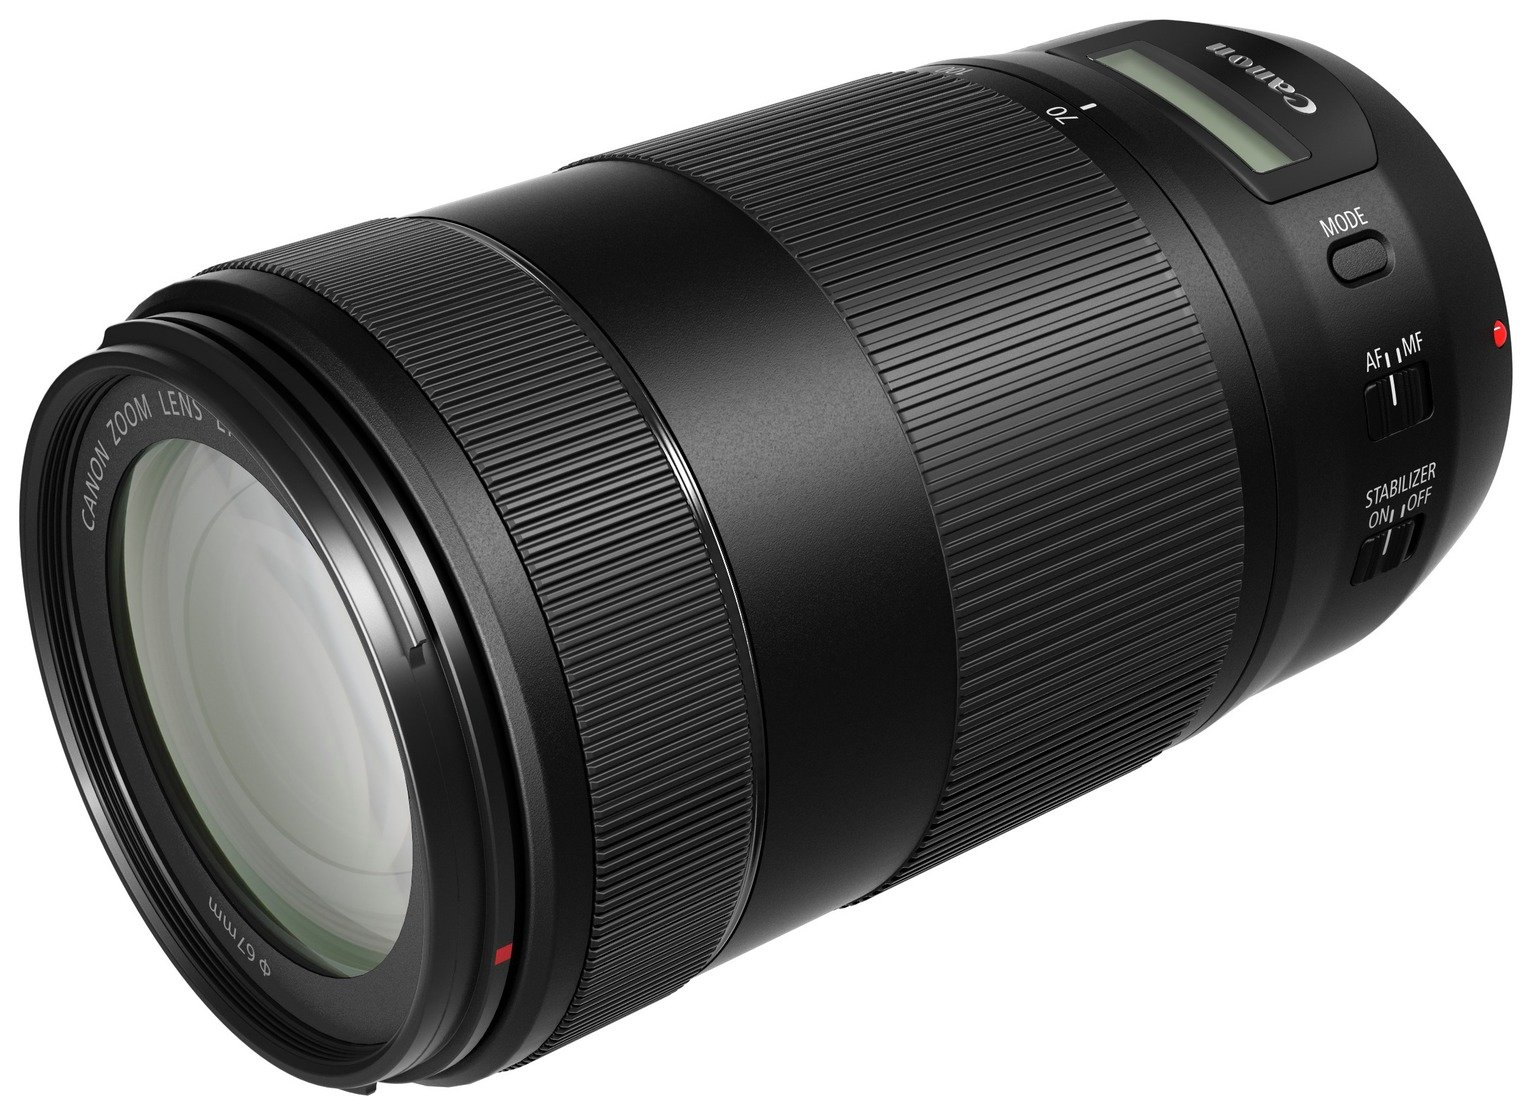 Image of Canon 70-300mm EF/ EF-s Lens